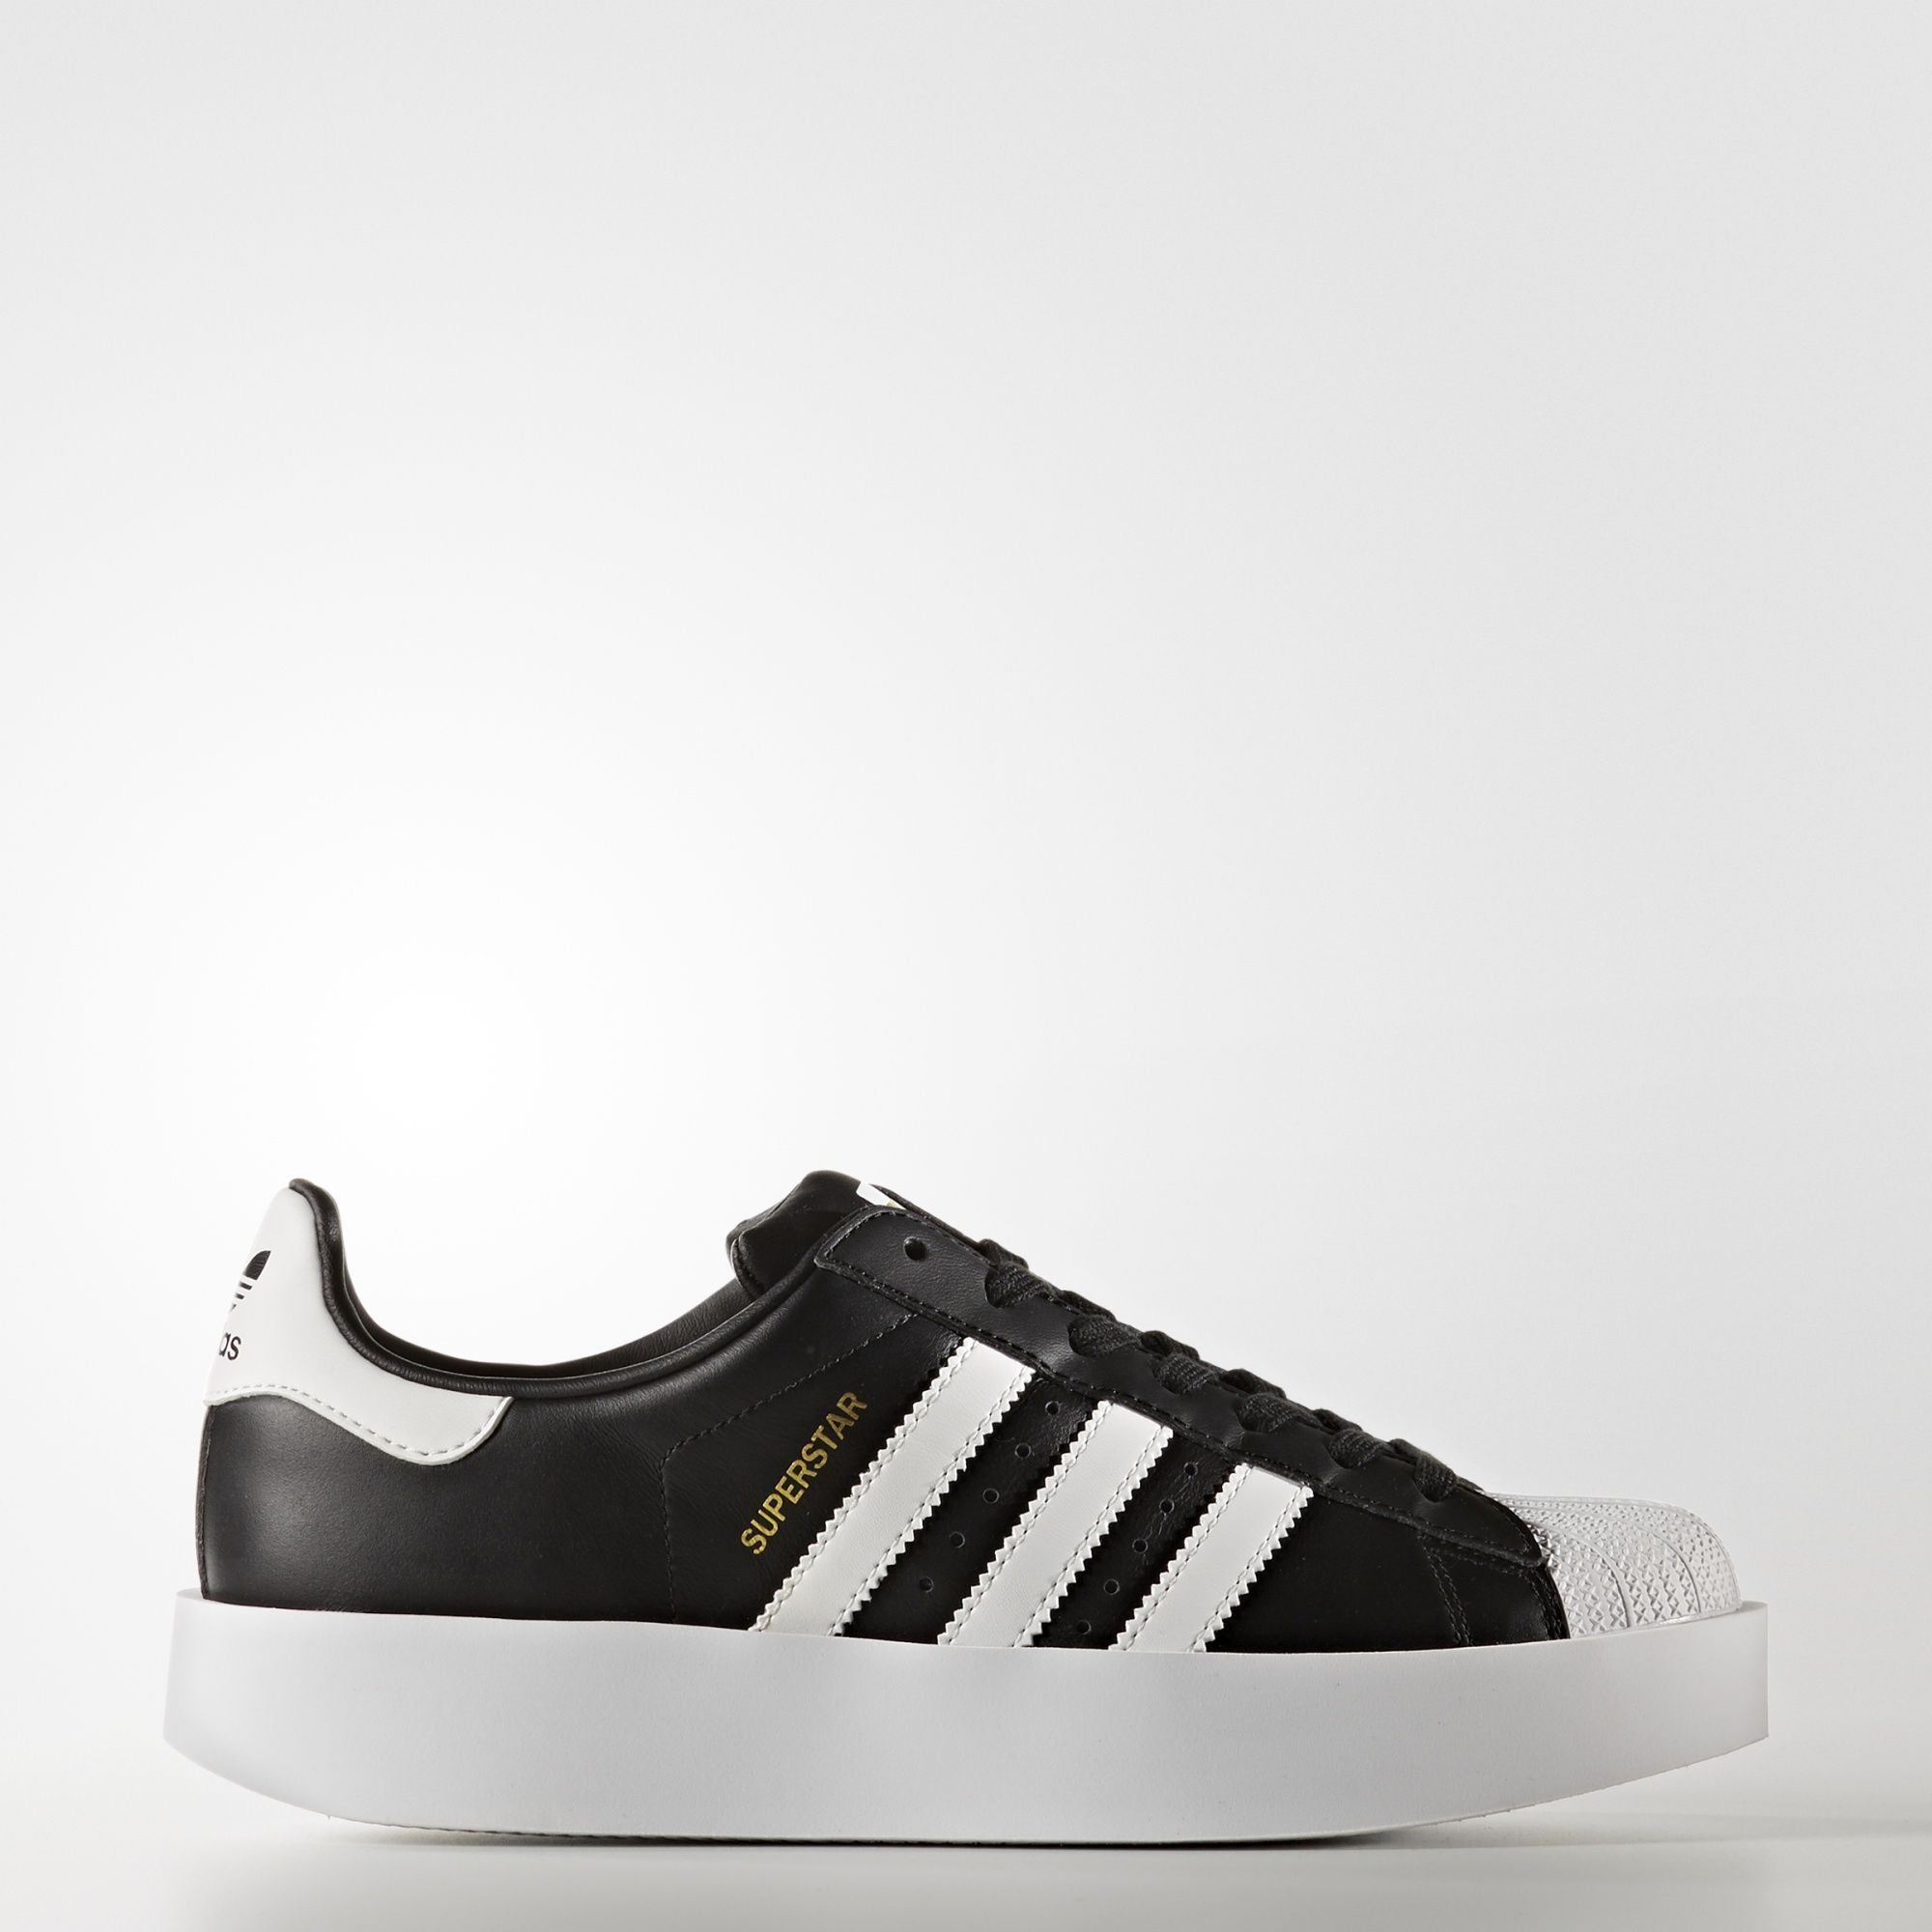 adidas - Superstar Bold Platform Shoes | Superstars shoes ...